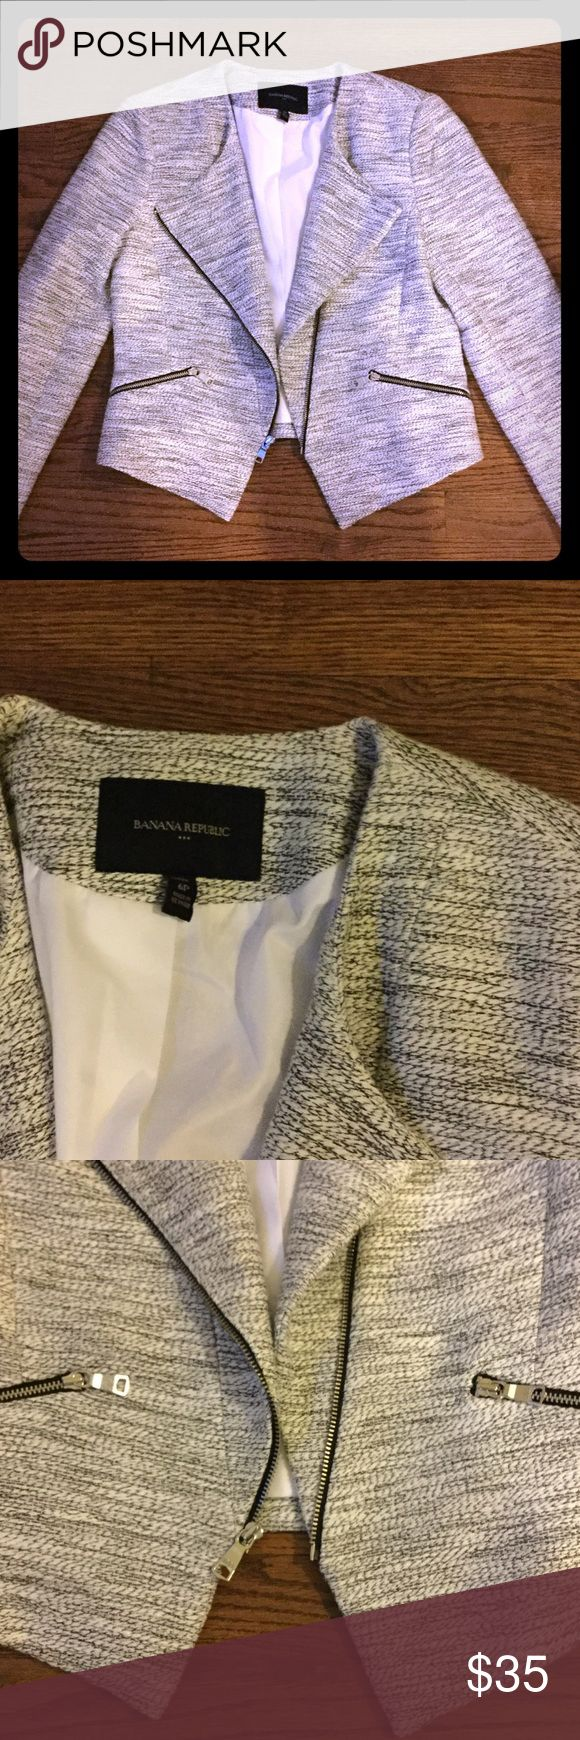 Banana Republic cropped Blazer Tweed black and white cropped Blazer. Slightly longer in front. Great structure in shoulder area. Useable front pockets. Fully lined. Same zipper detailing on sleeves. Has a moto vibe to it. Banana Republic Jackets & Coats Blazers